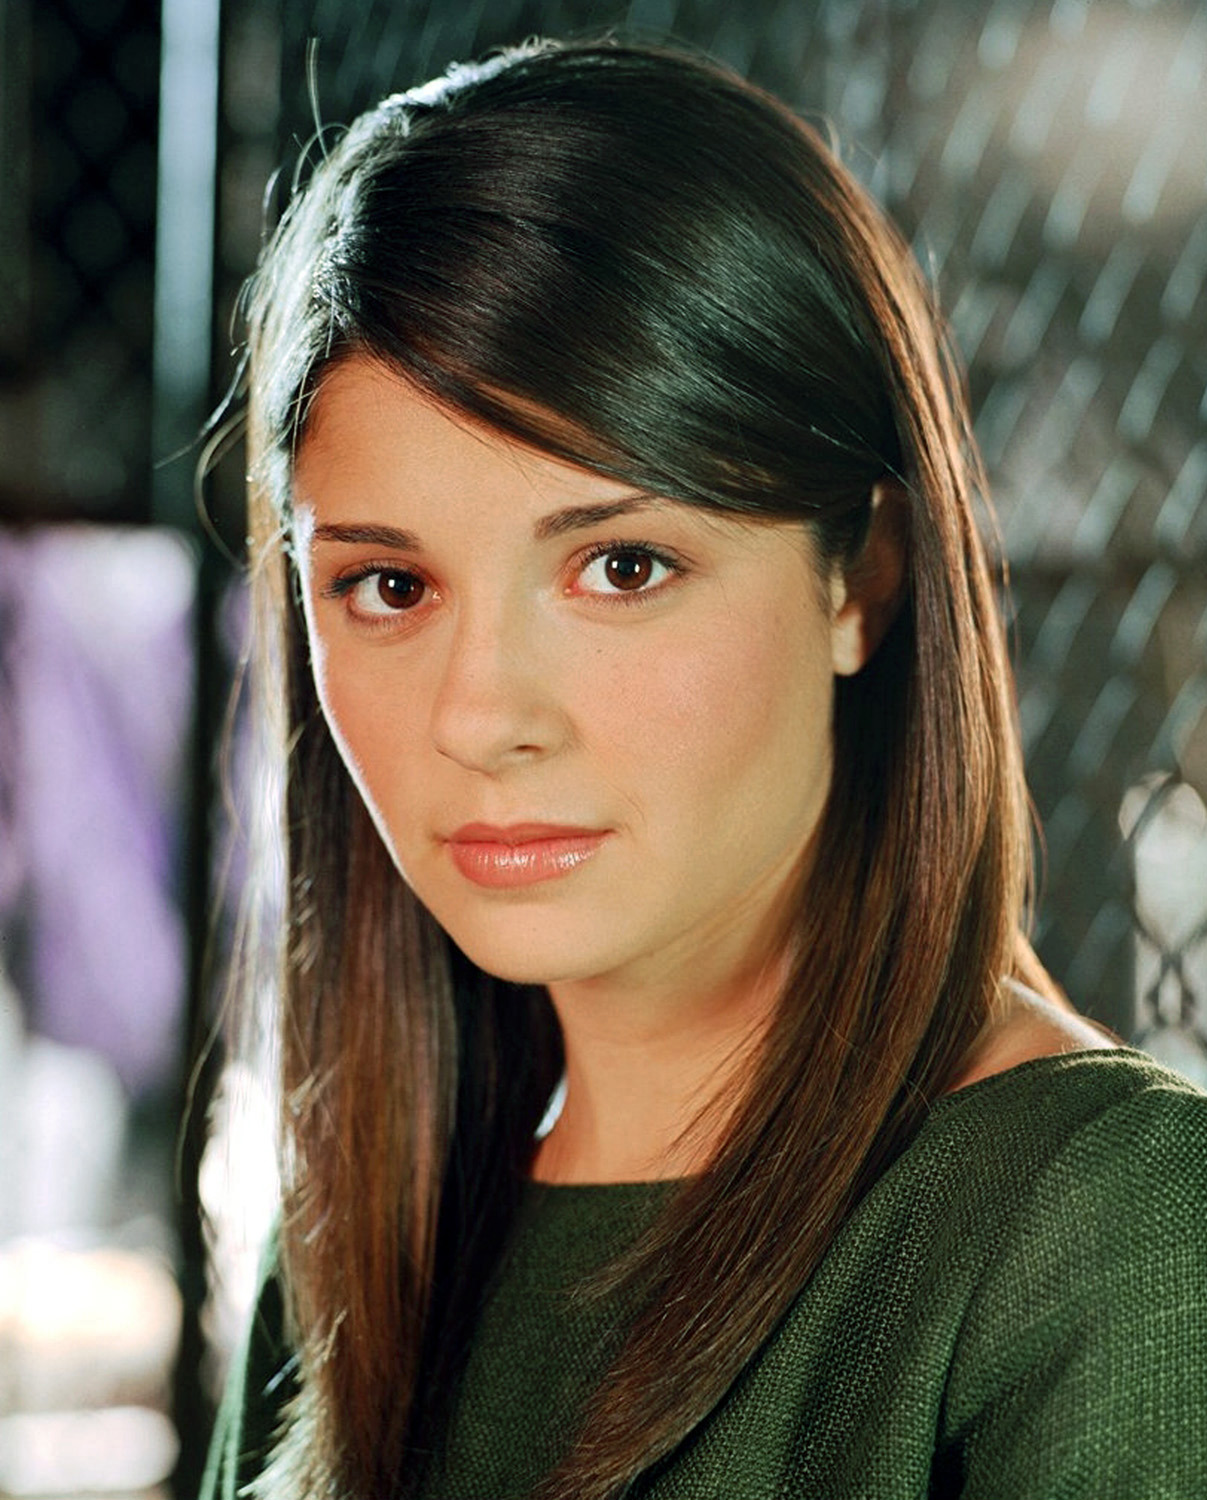 http://static.tvtropes.org/pmwiki/pub/images/shiri_appleby_liz_parker_green_1_dvdbash.jpg